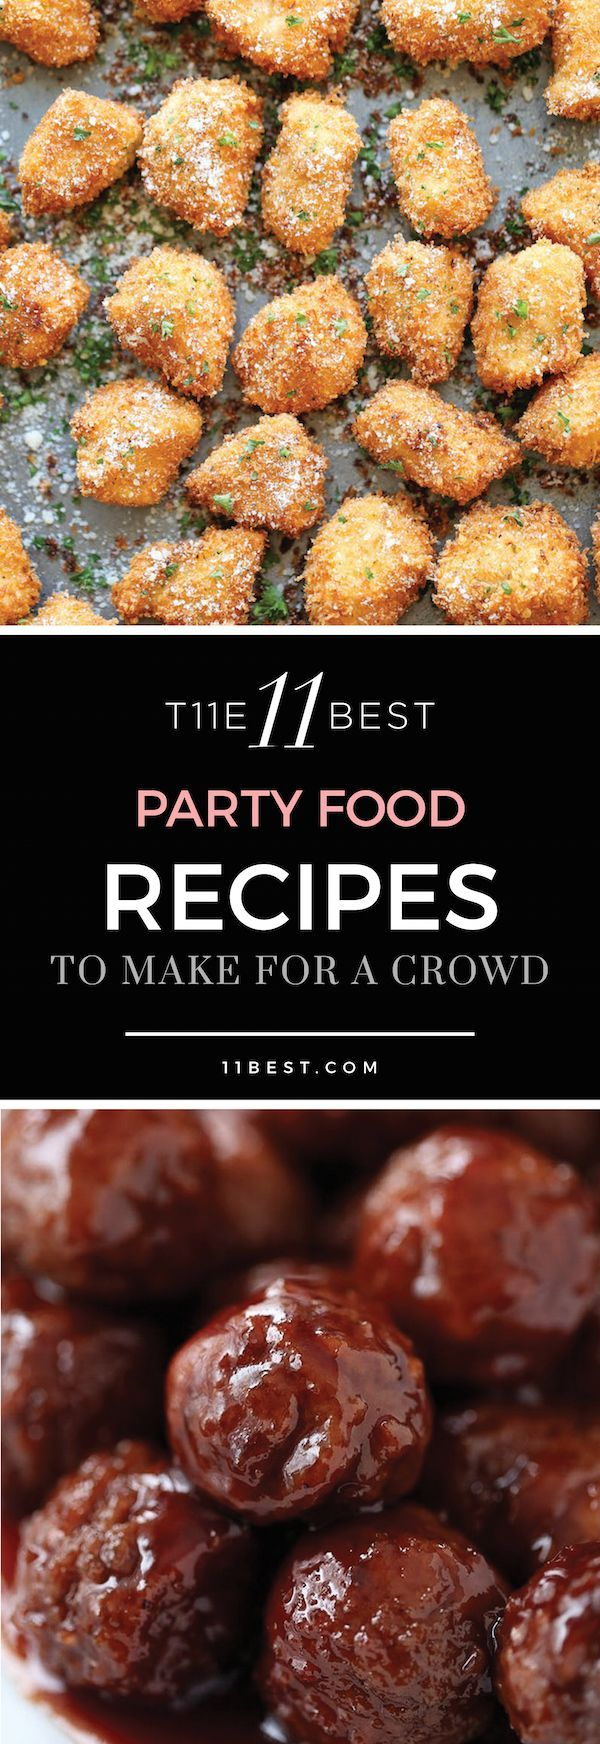 The 11 Best Party Food Recipes. Make some tummies happy :-D ! www.bingohall.com